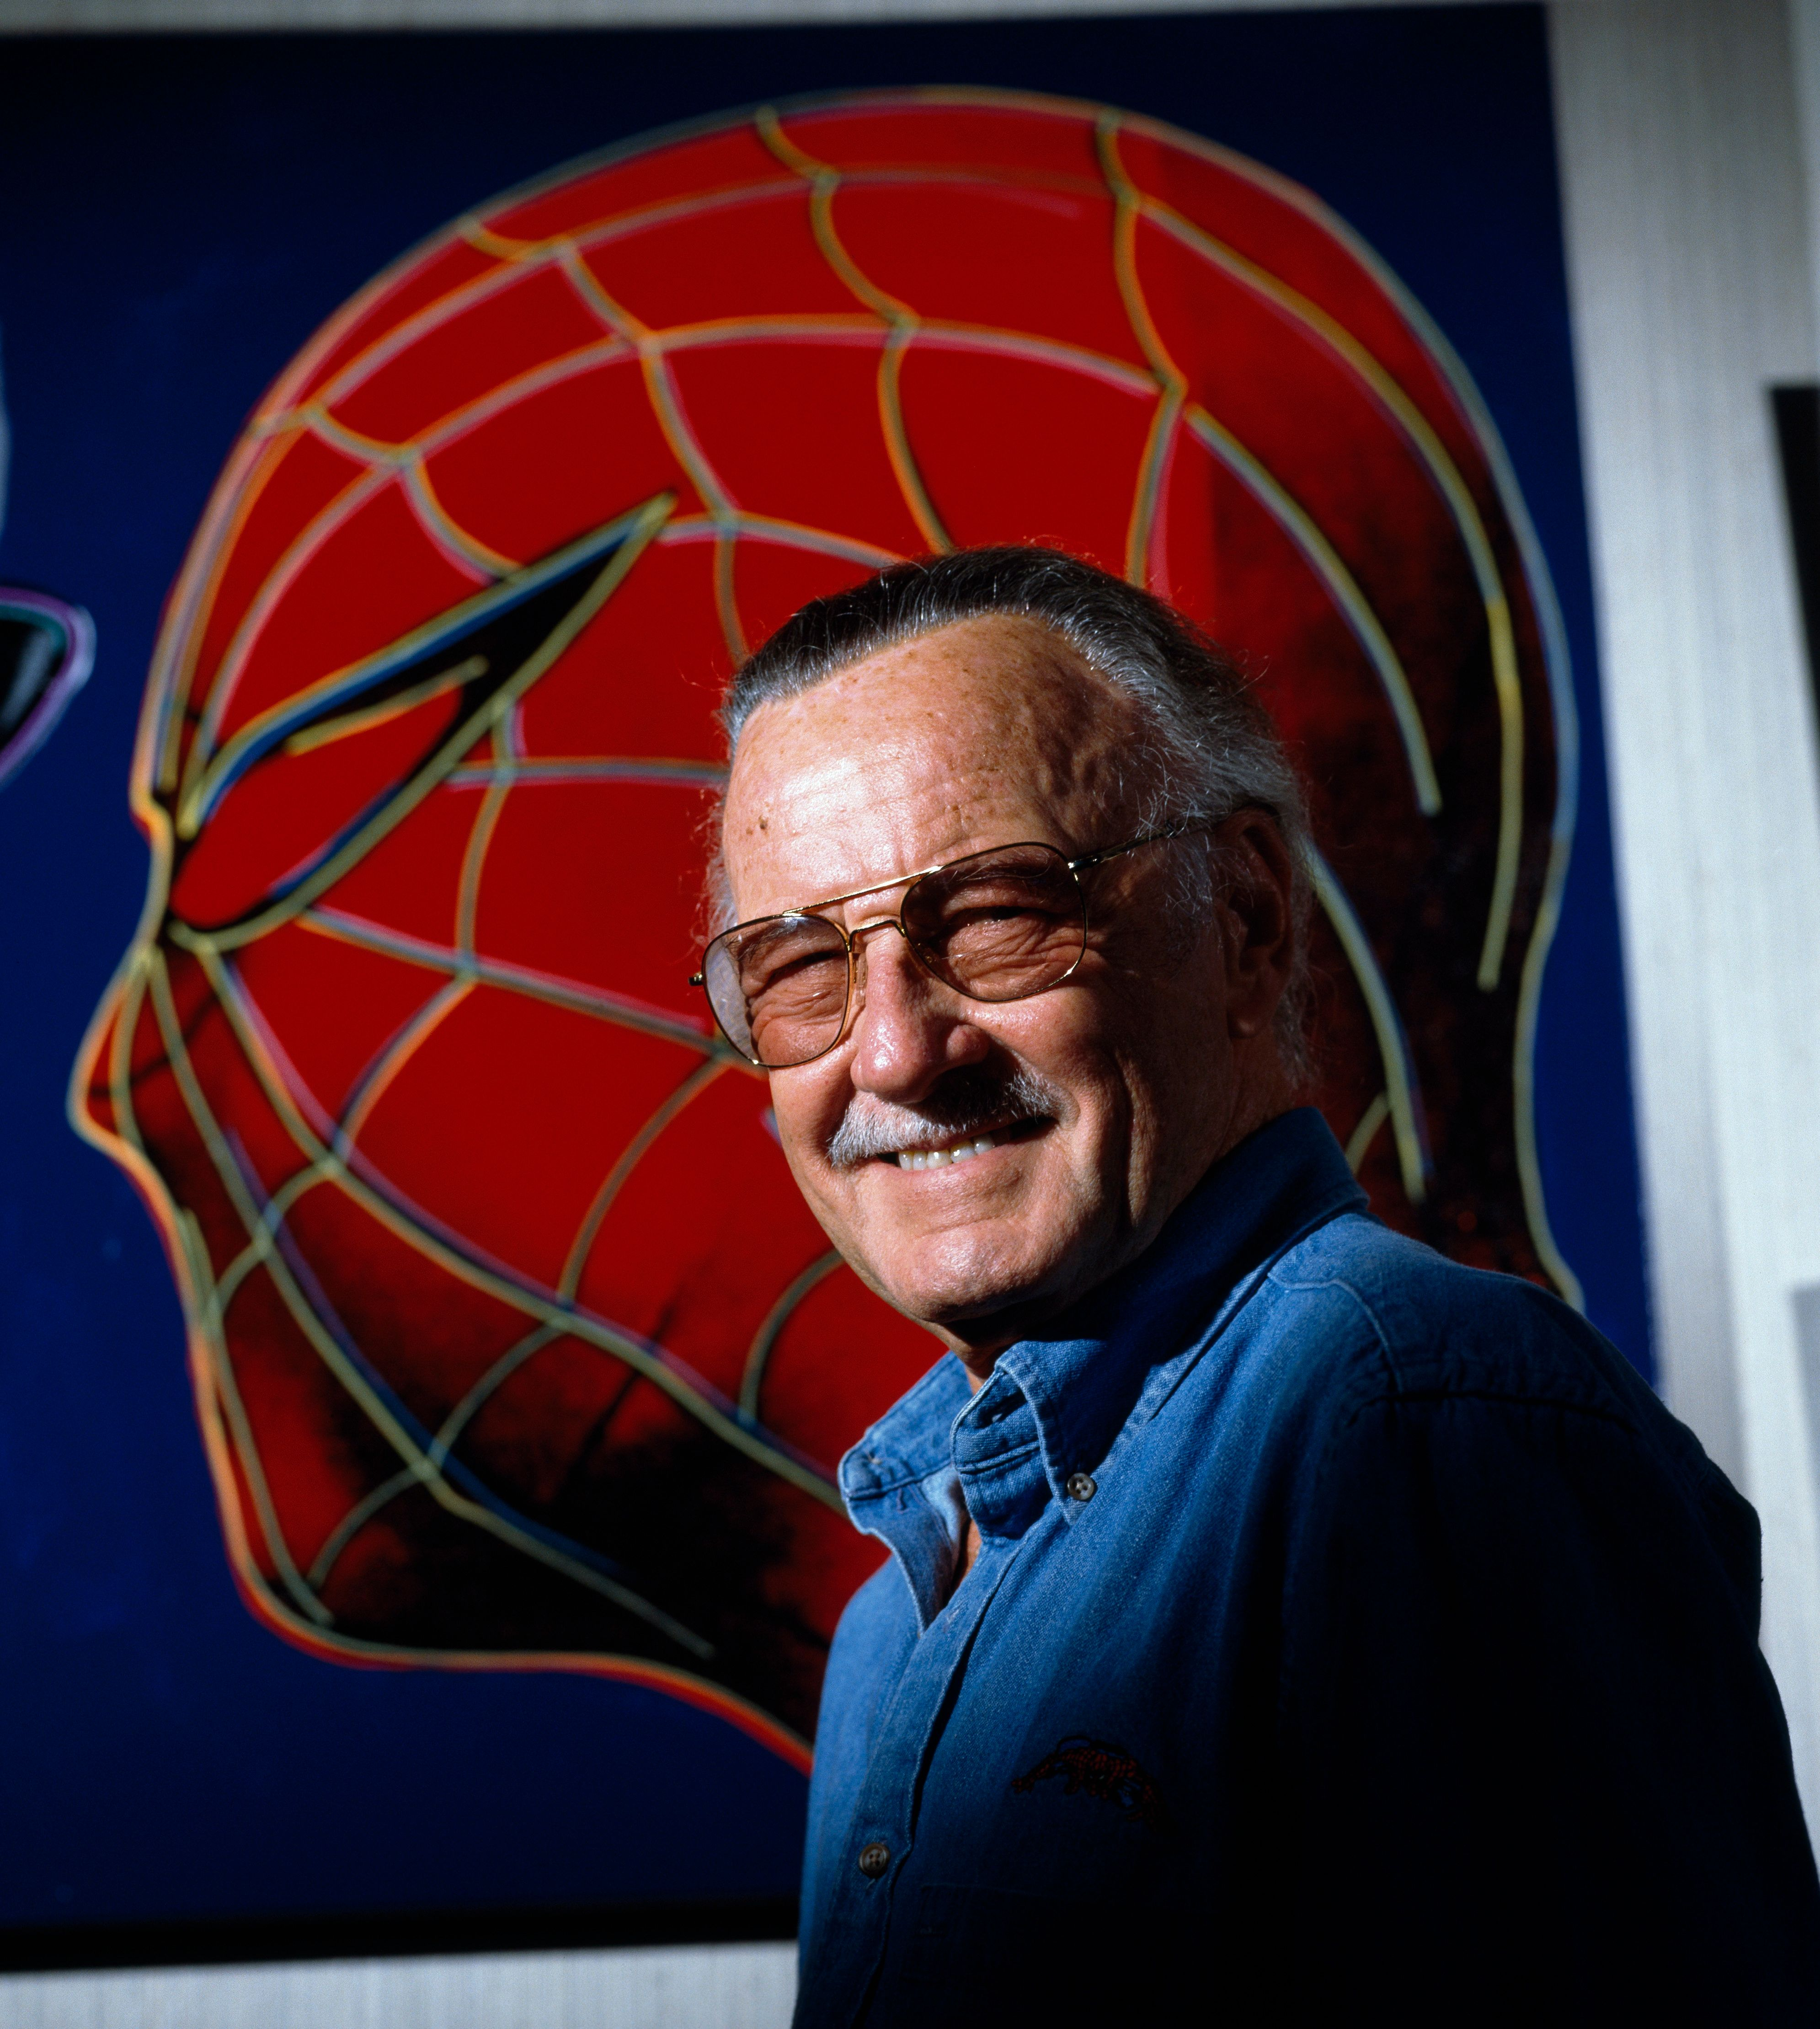 Stan Lee is an American comic book writer, editor, publisher, media producer, television host, actor, president and chairman of Marvel Comics. (Photo by Evan Hurd/Sygma/Corbis via Getty Images)